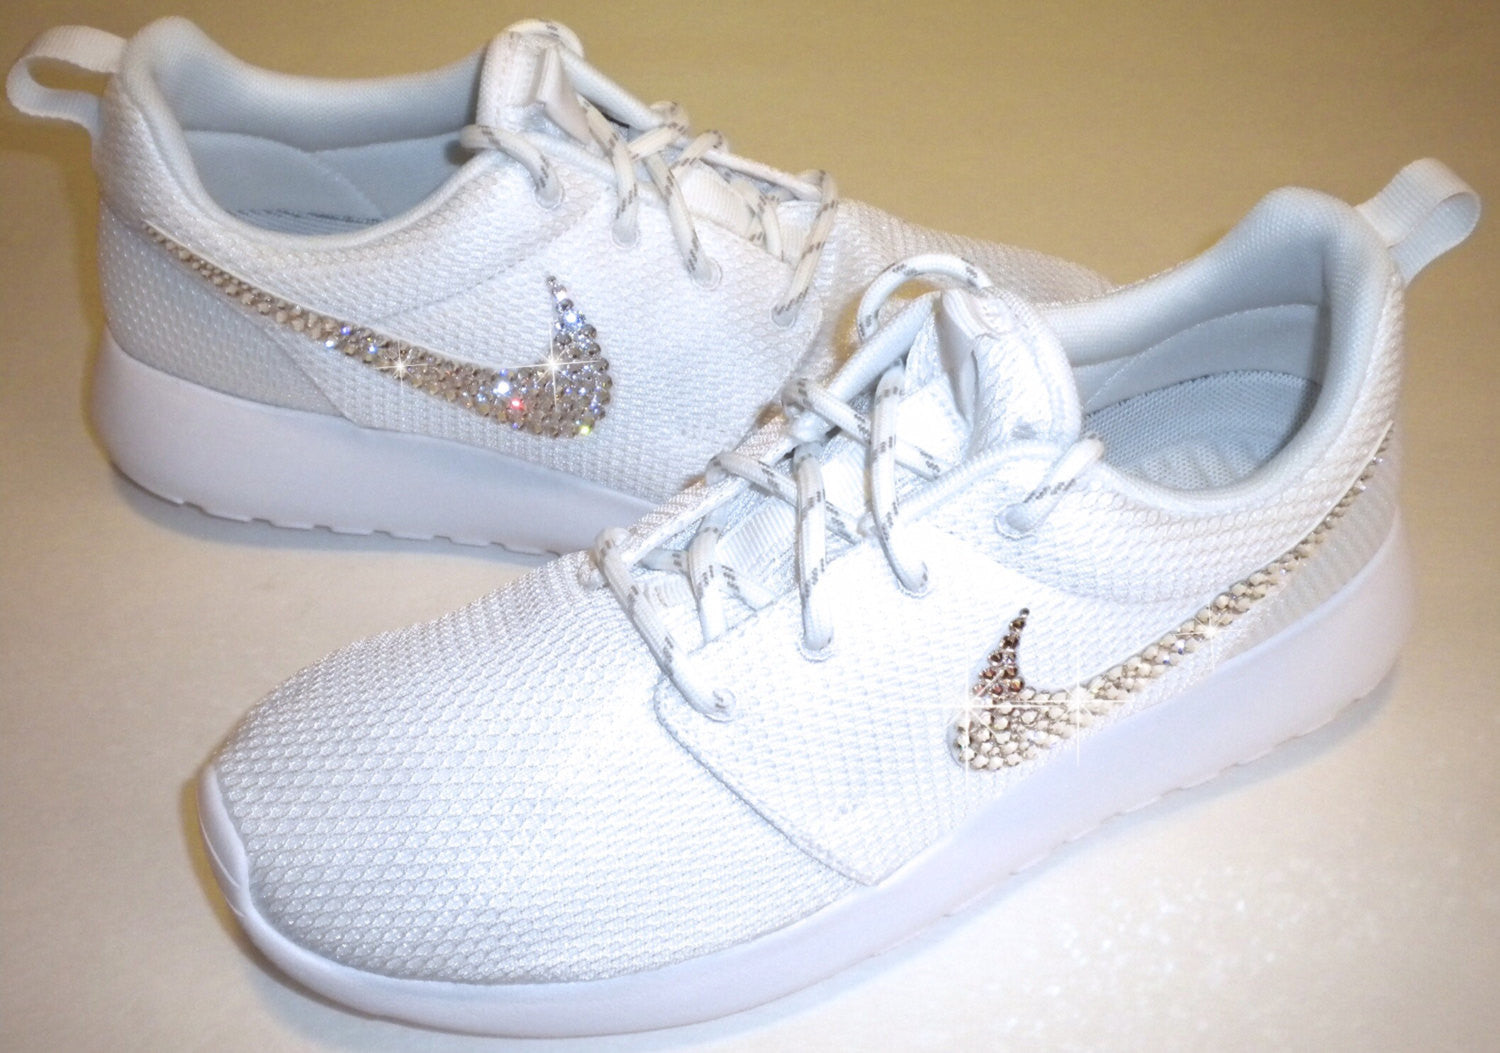 ... closeout all white bling nike roshe one shoes bedazzled with authentic  swarovski crystals for maximum sparkle 72423e336